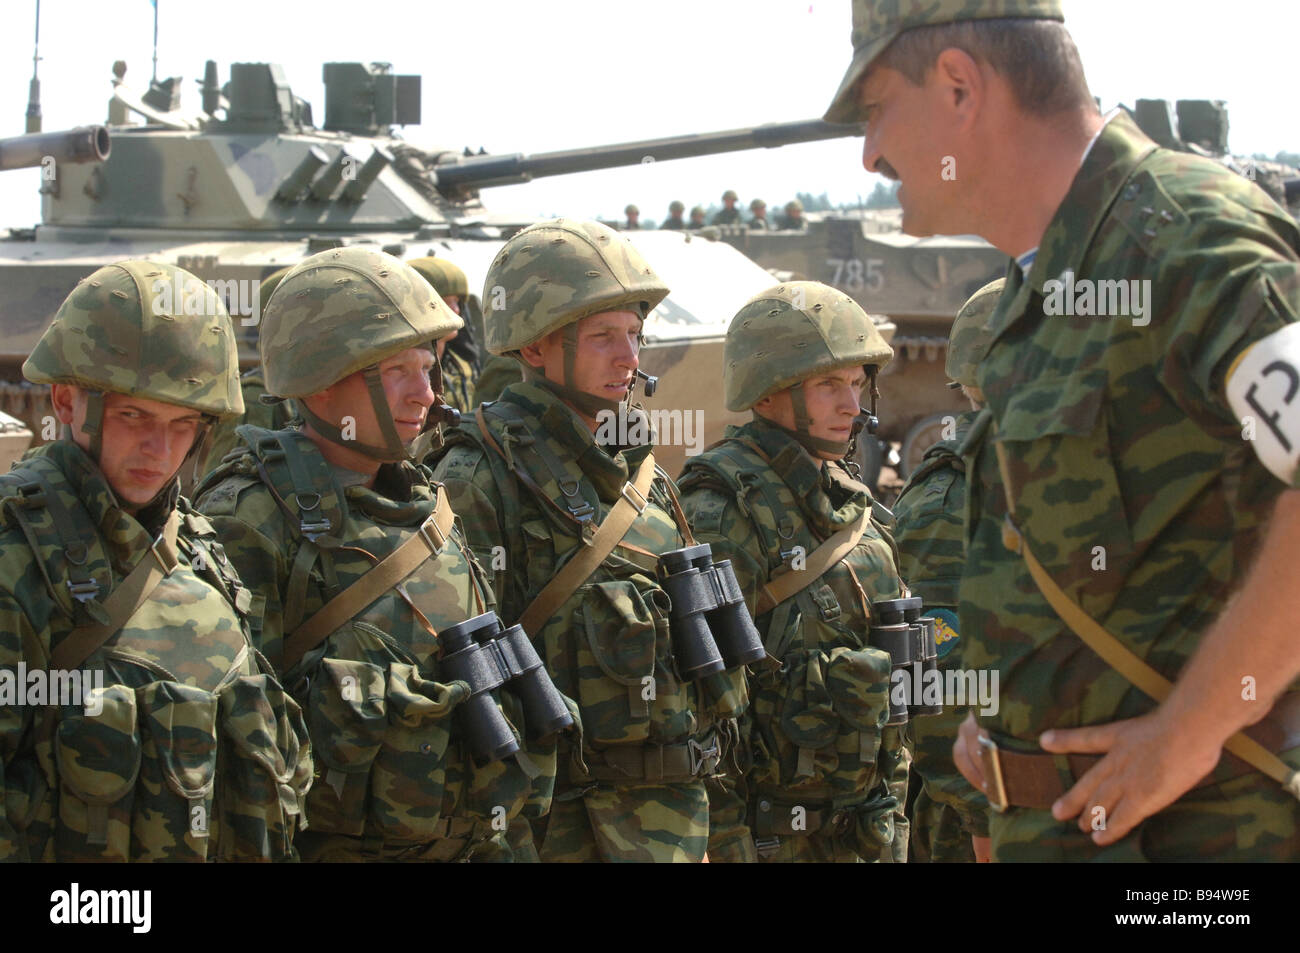 At the command and staff exercise involving 31st Guards Separate Airborne Brigade in Ryazan Region - Stock Image